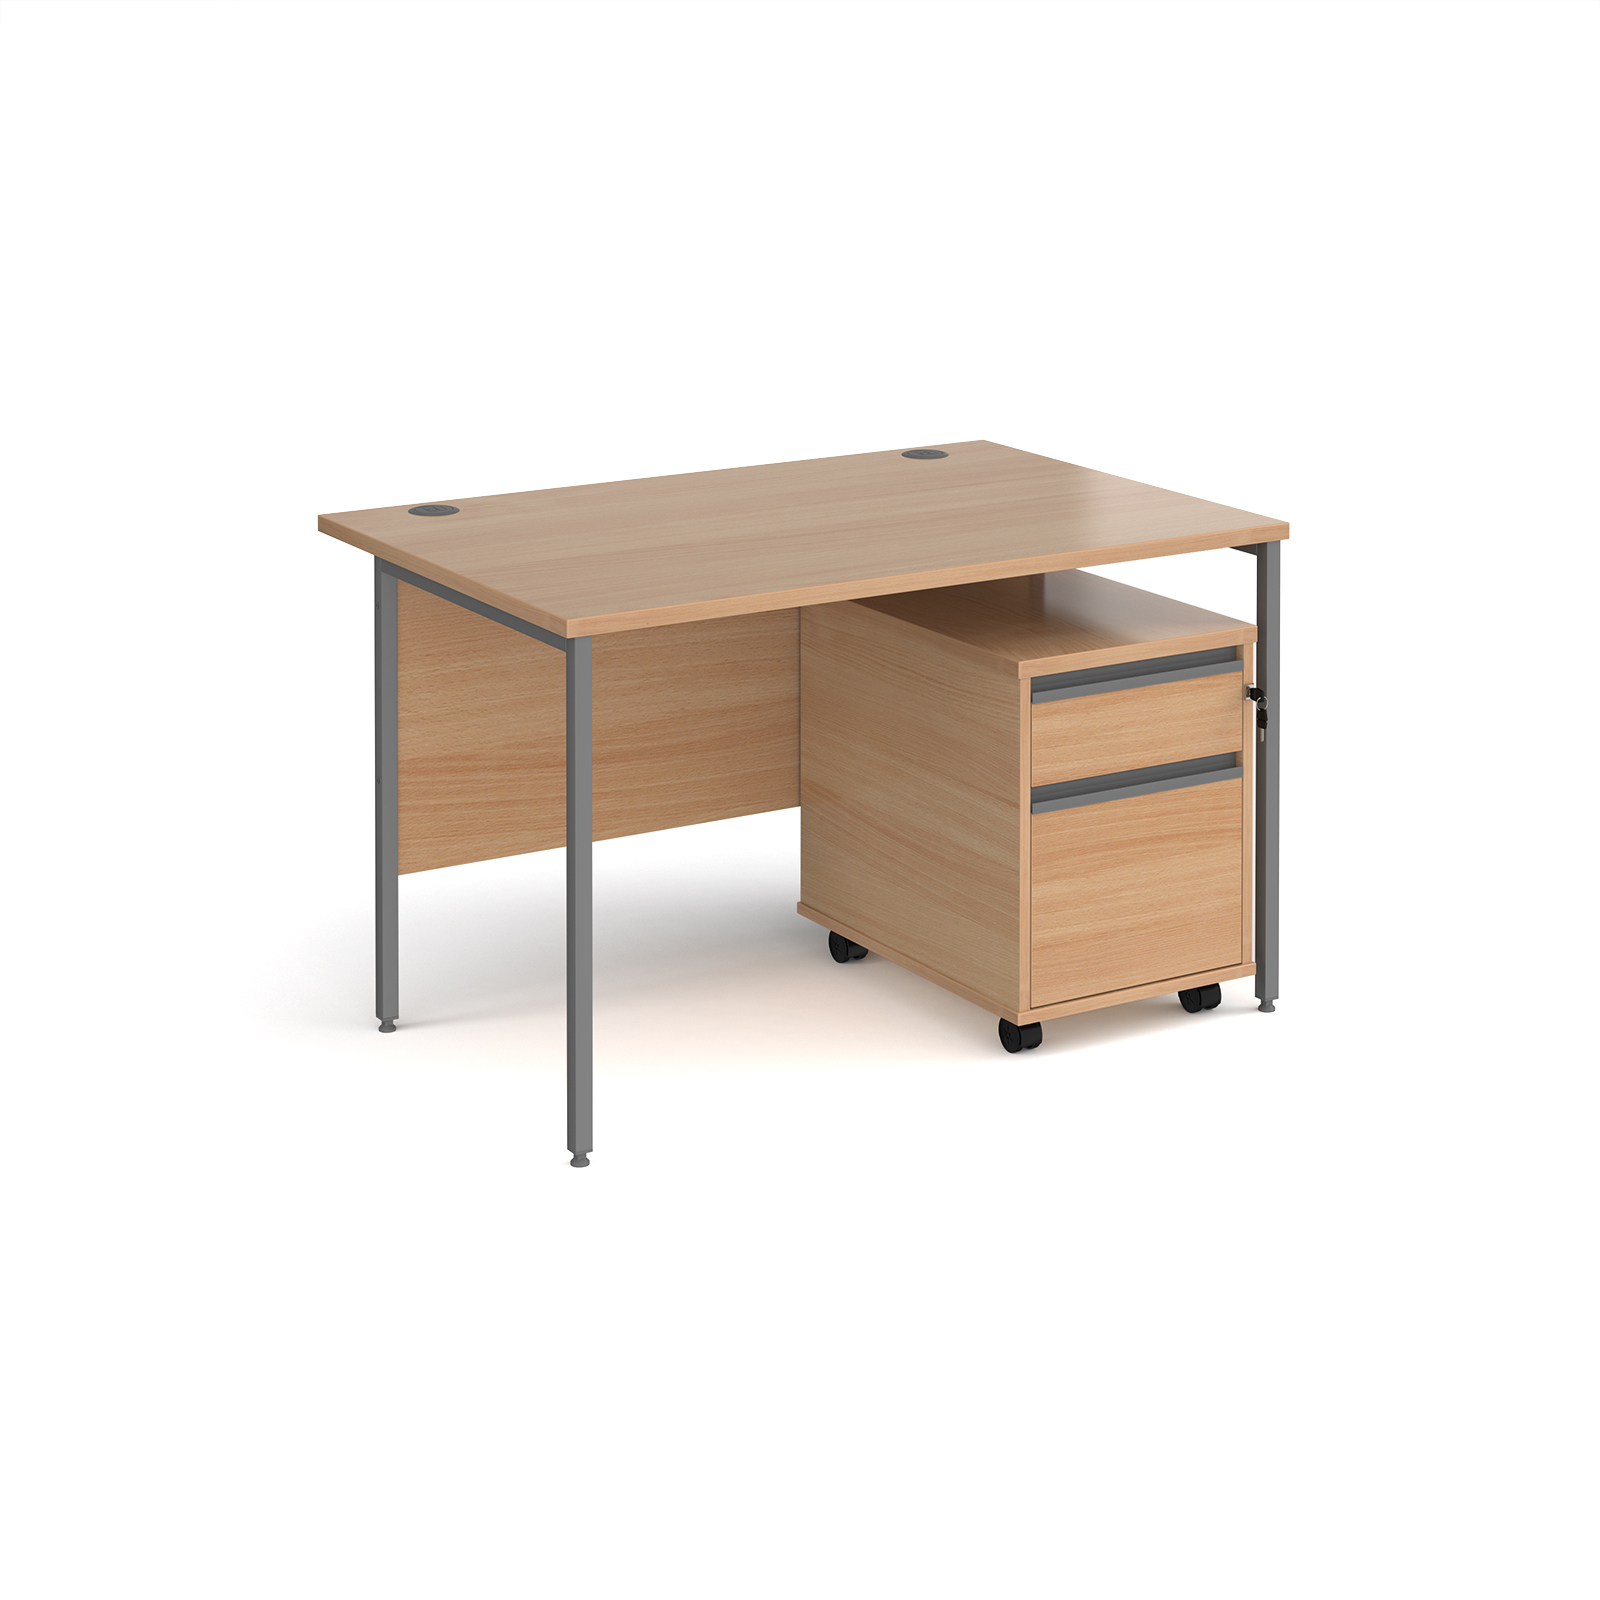 Contract 25 straight H-frame desk with mobile pedestal